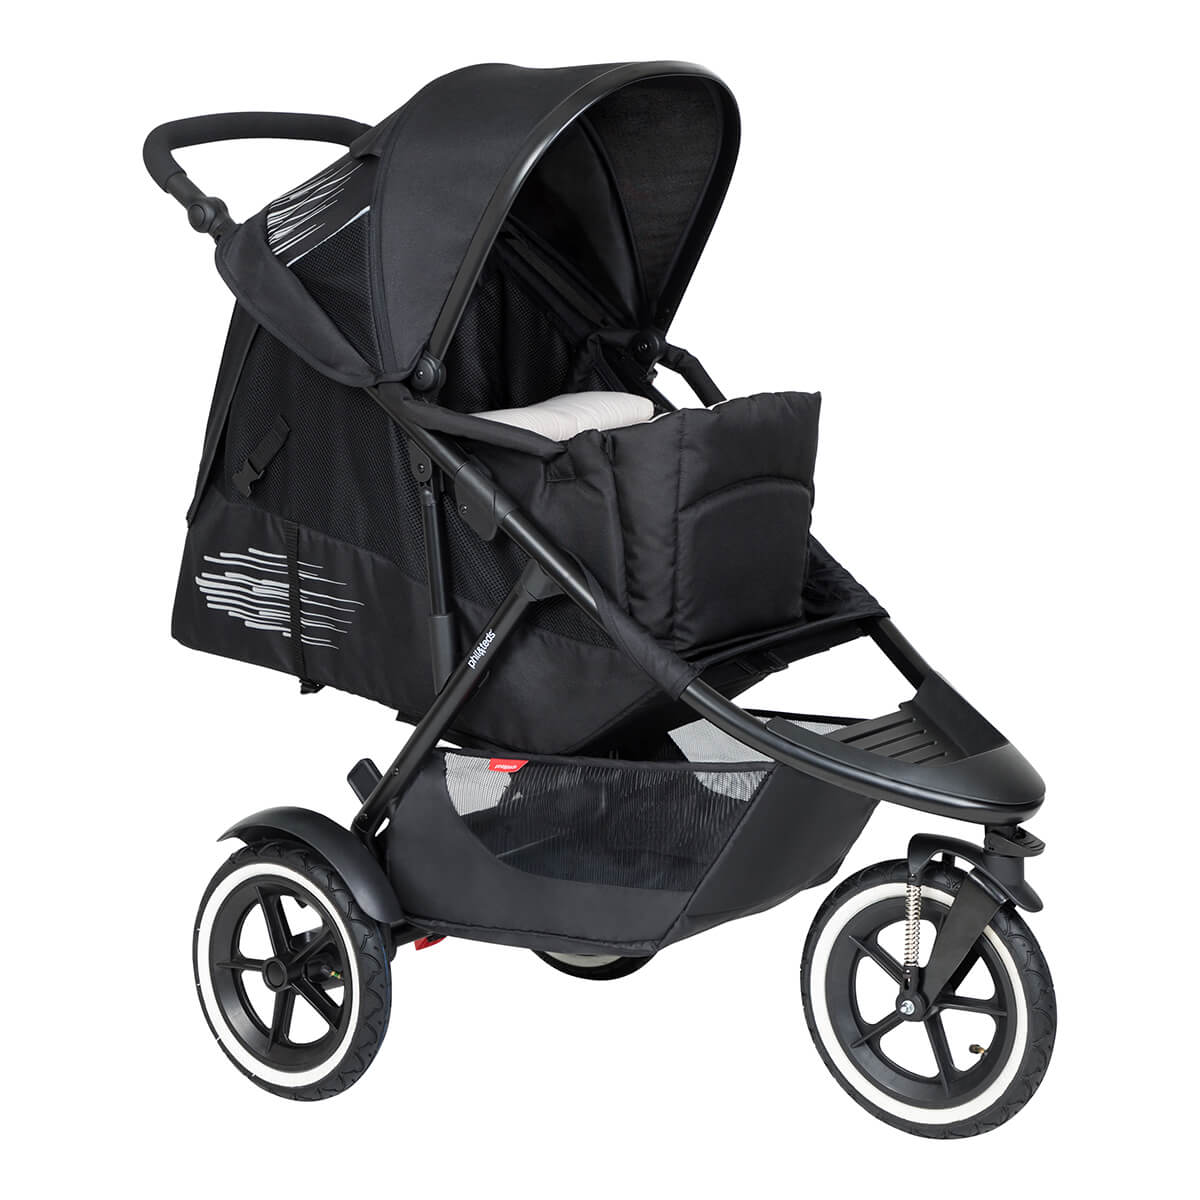 https://cdn.accentuate.io/4394651156568/19272668119128/philteds-sport-buggy-with-cocoon-full-recline-v1632099602487.jpg?1200x1200